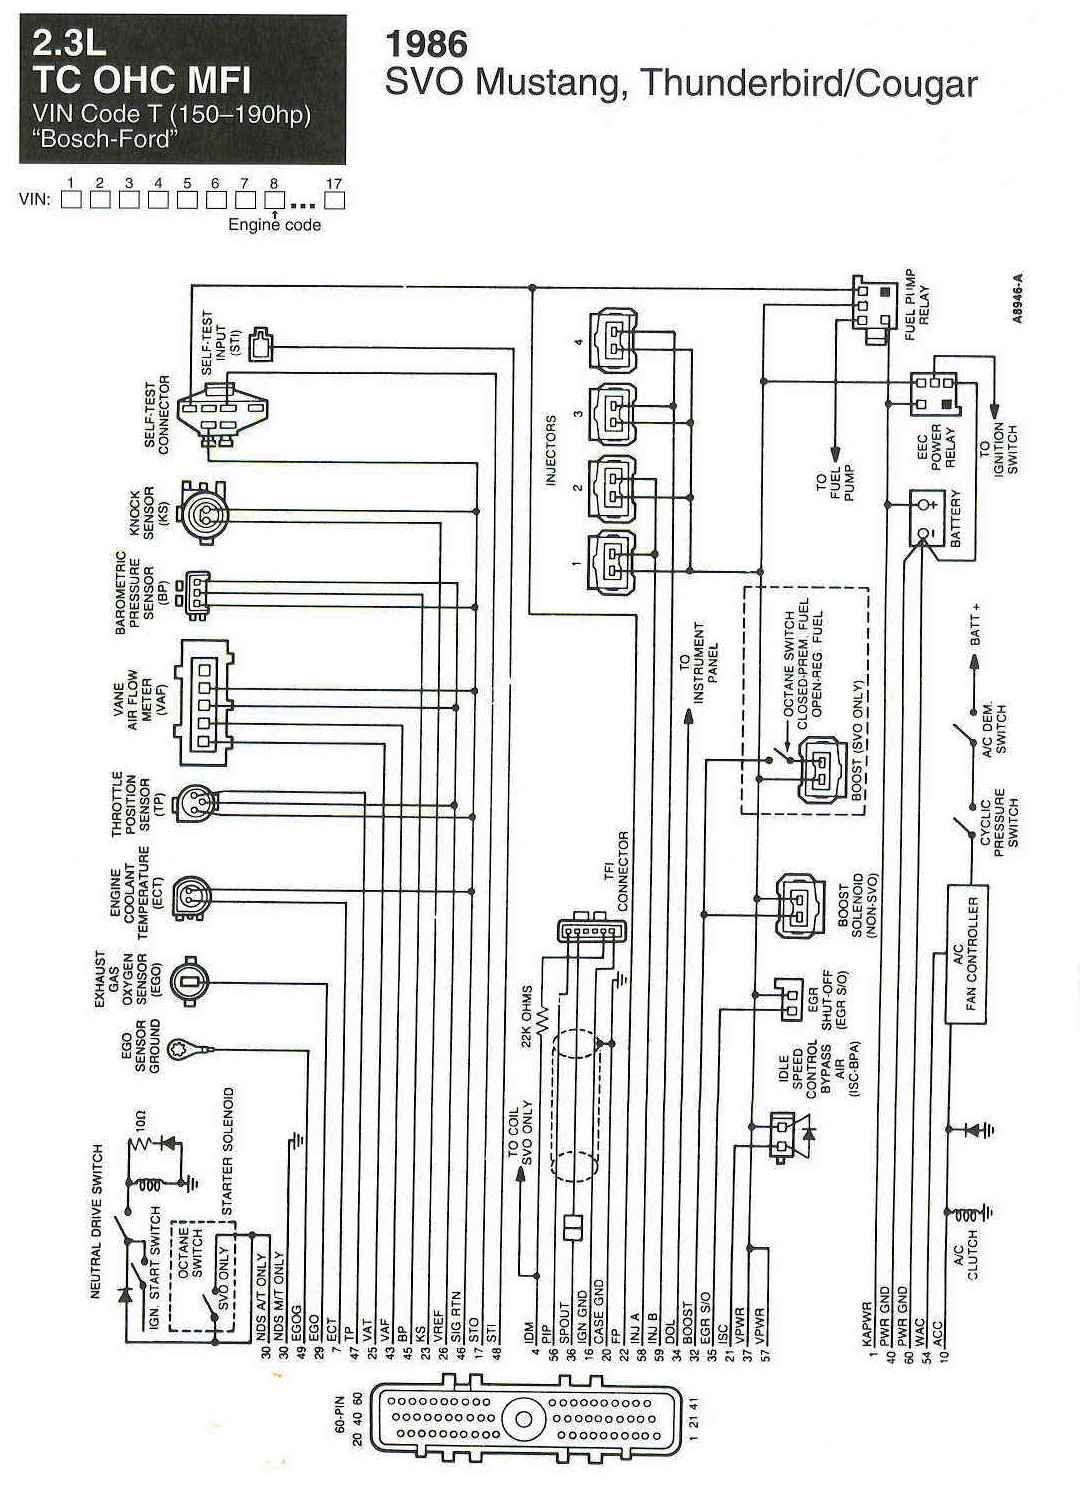 Car5 3 furthermore Mustang 86 Body Diagram To 93 Wiring together with Toyota Oem Radiator Hose Celica All 00 05 Lower as well 2000 Ford Ranger 4x4 likewise 2006 Ford Mustang V6 Fuse Box Diagram. on 2005 ford gt